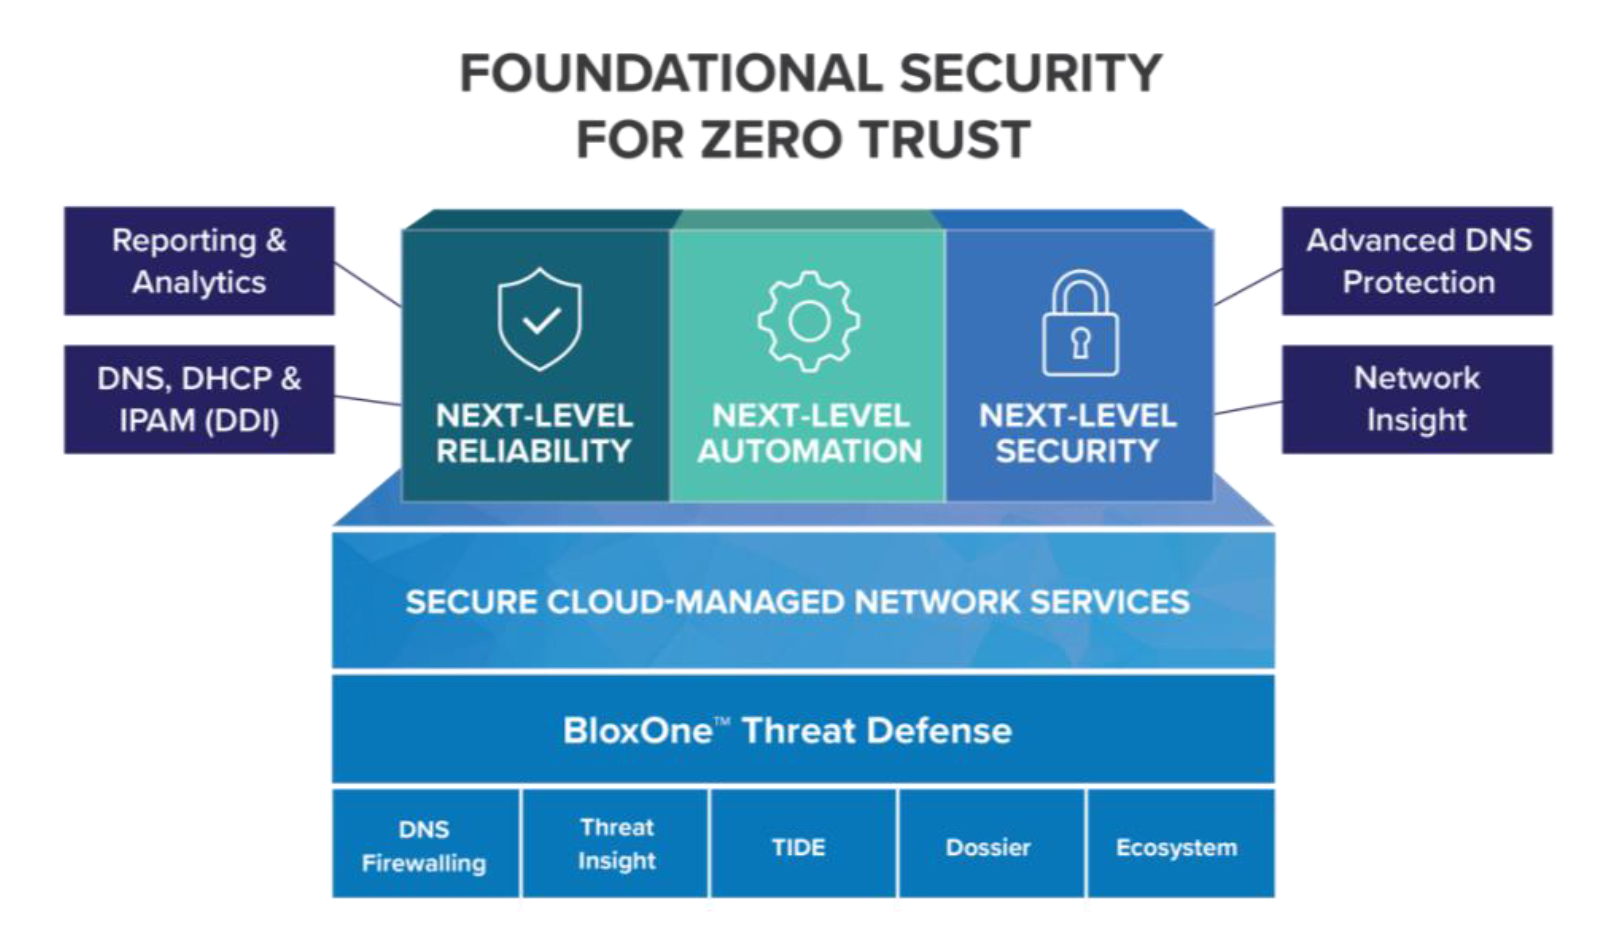 Figure 2: BloxOne Threat Defense provides foundational security and supports key aspects of Zero Trust deployments